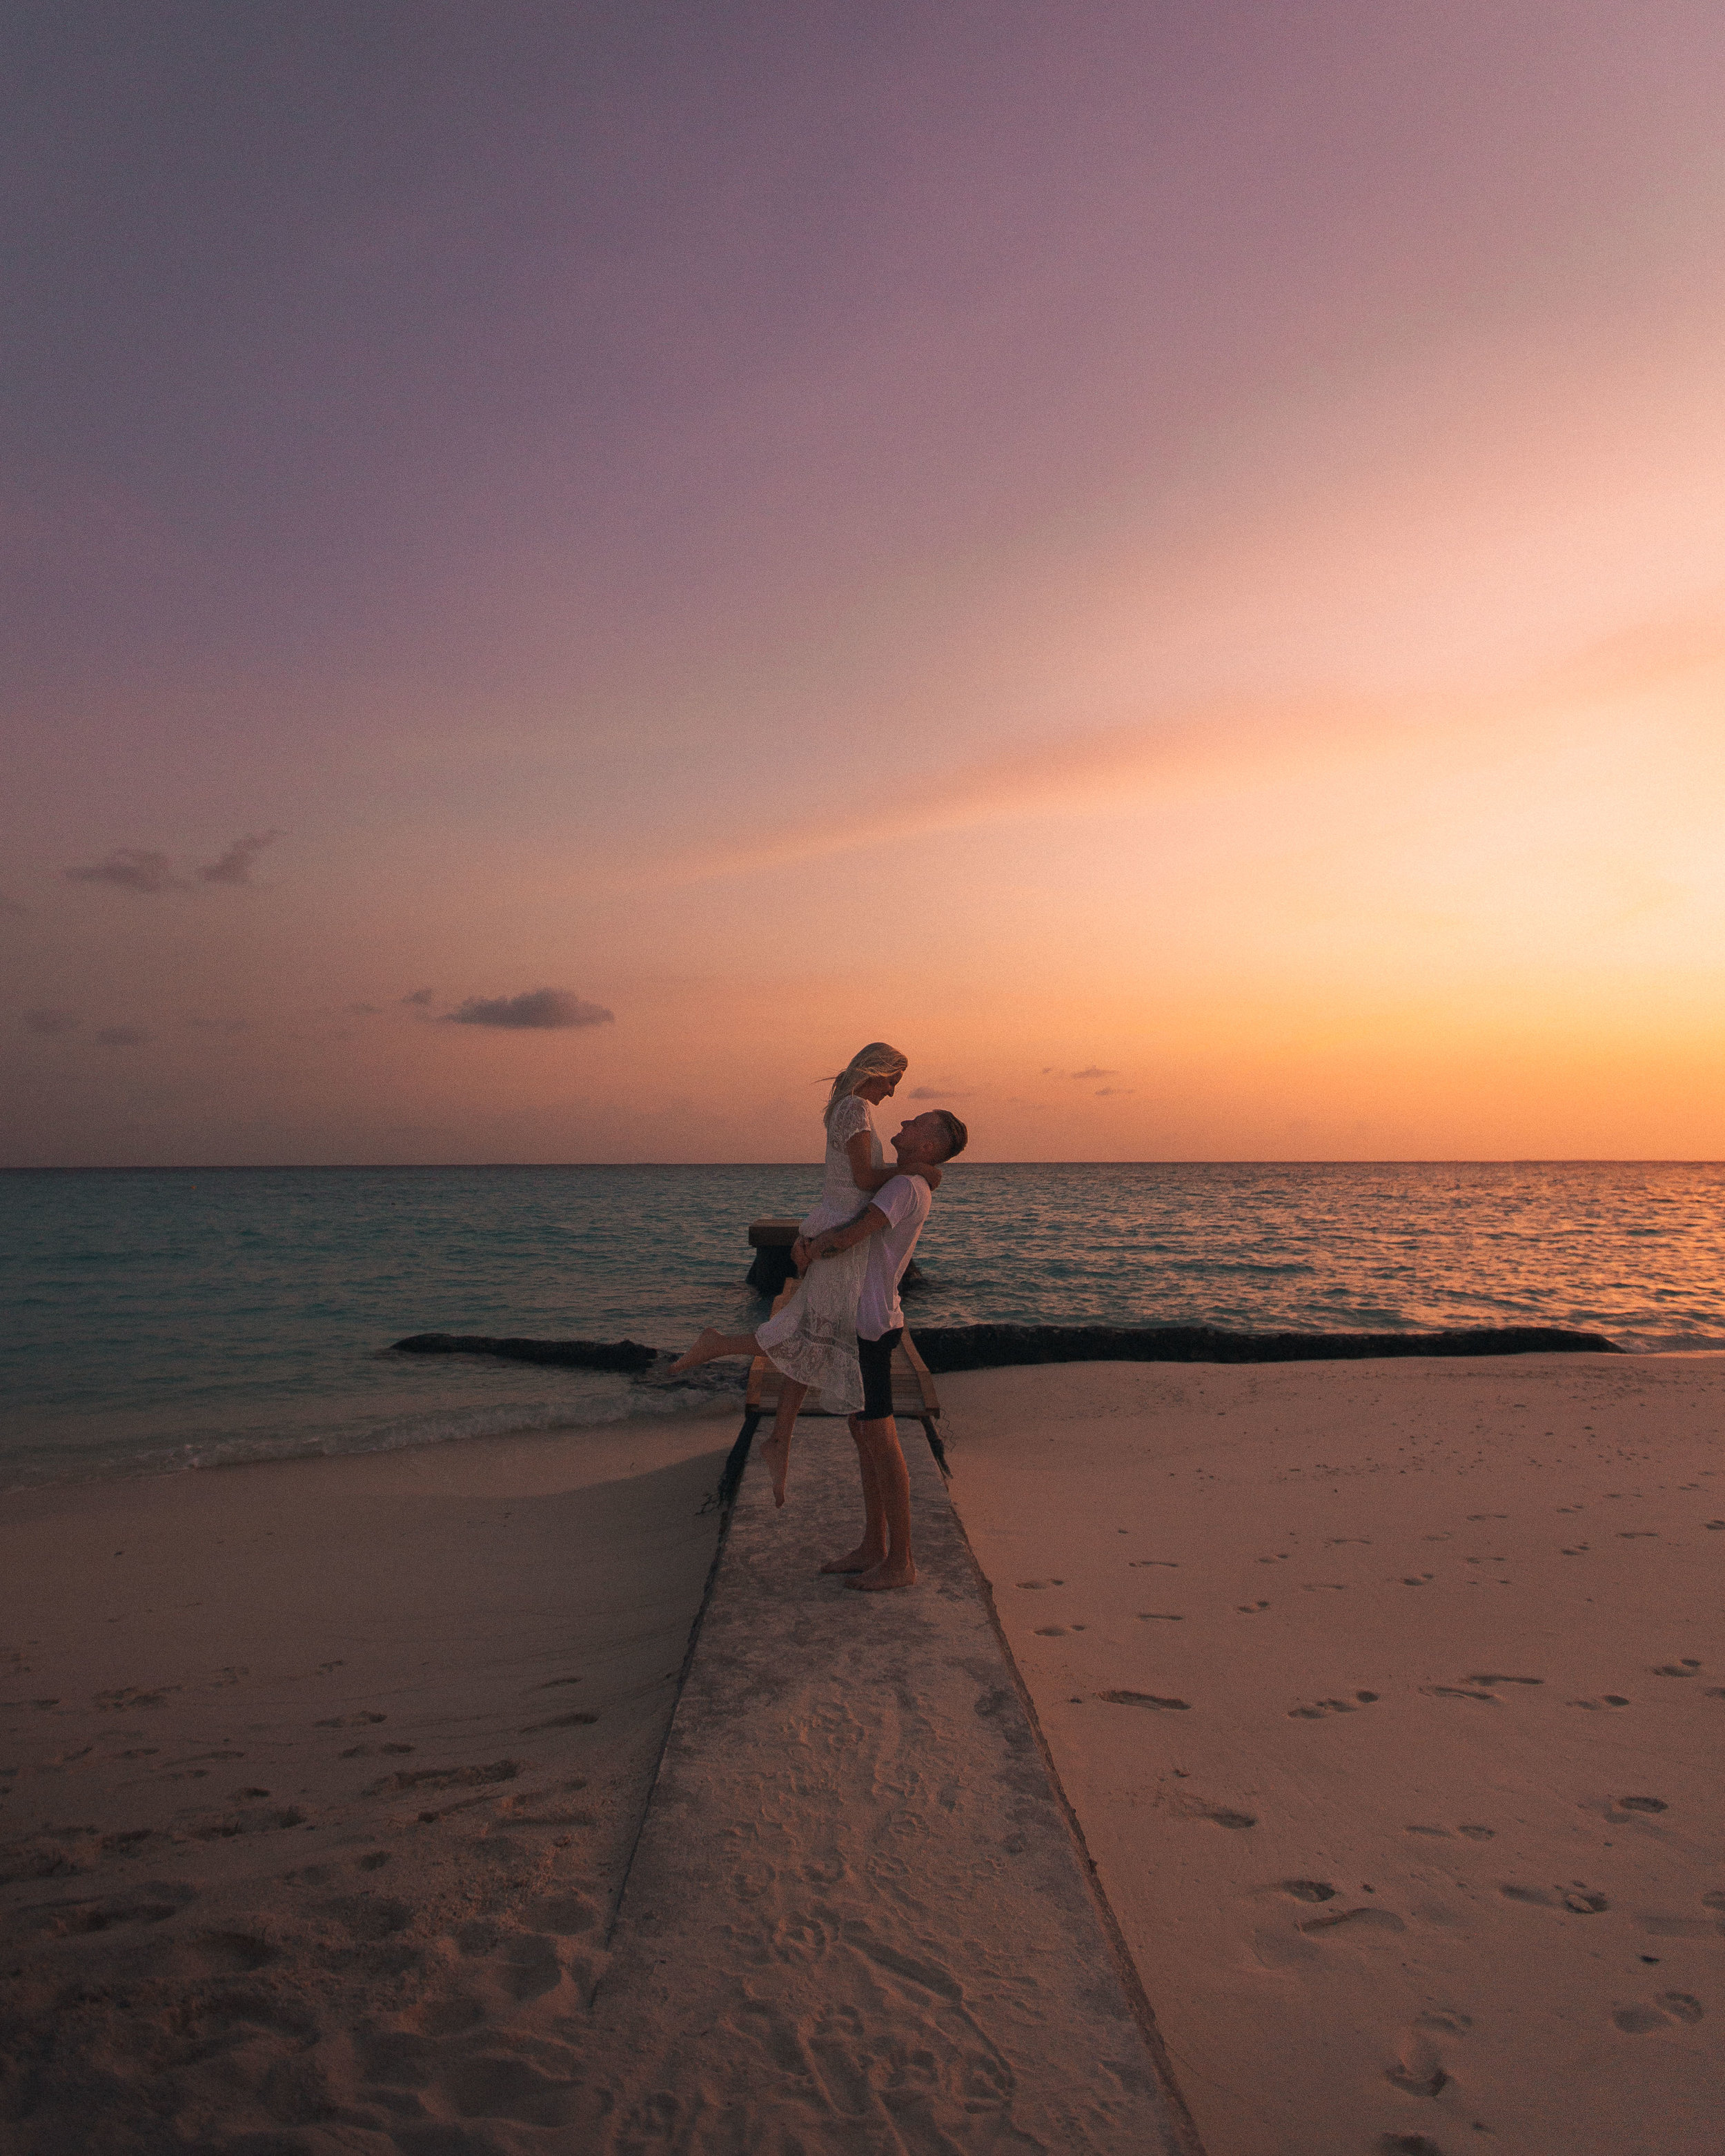 7:00 PM  // We made it back to the island just in time to take in the last few minutes of light and reminisce on our magical day on Fushifaru before dinner!